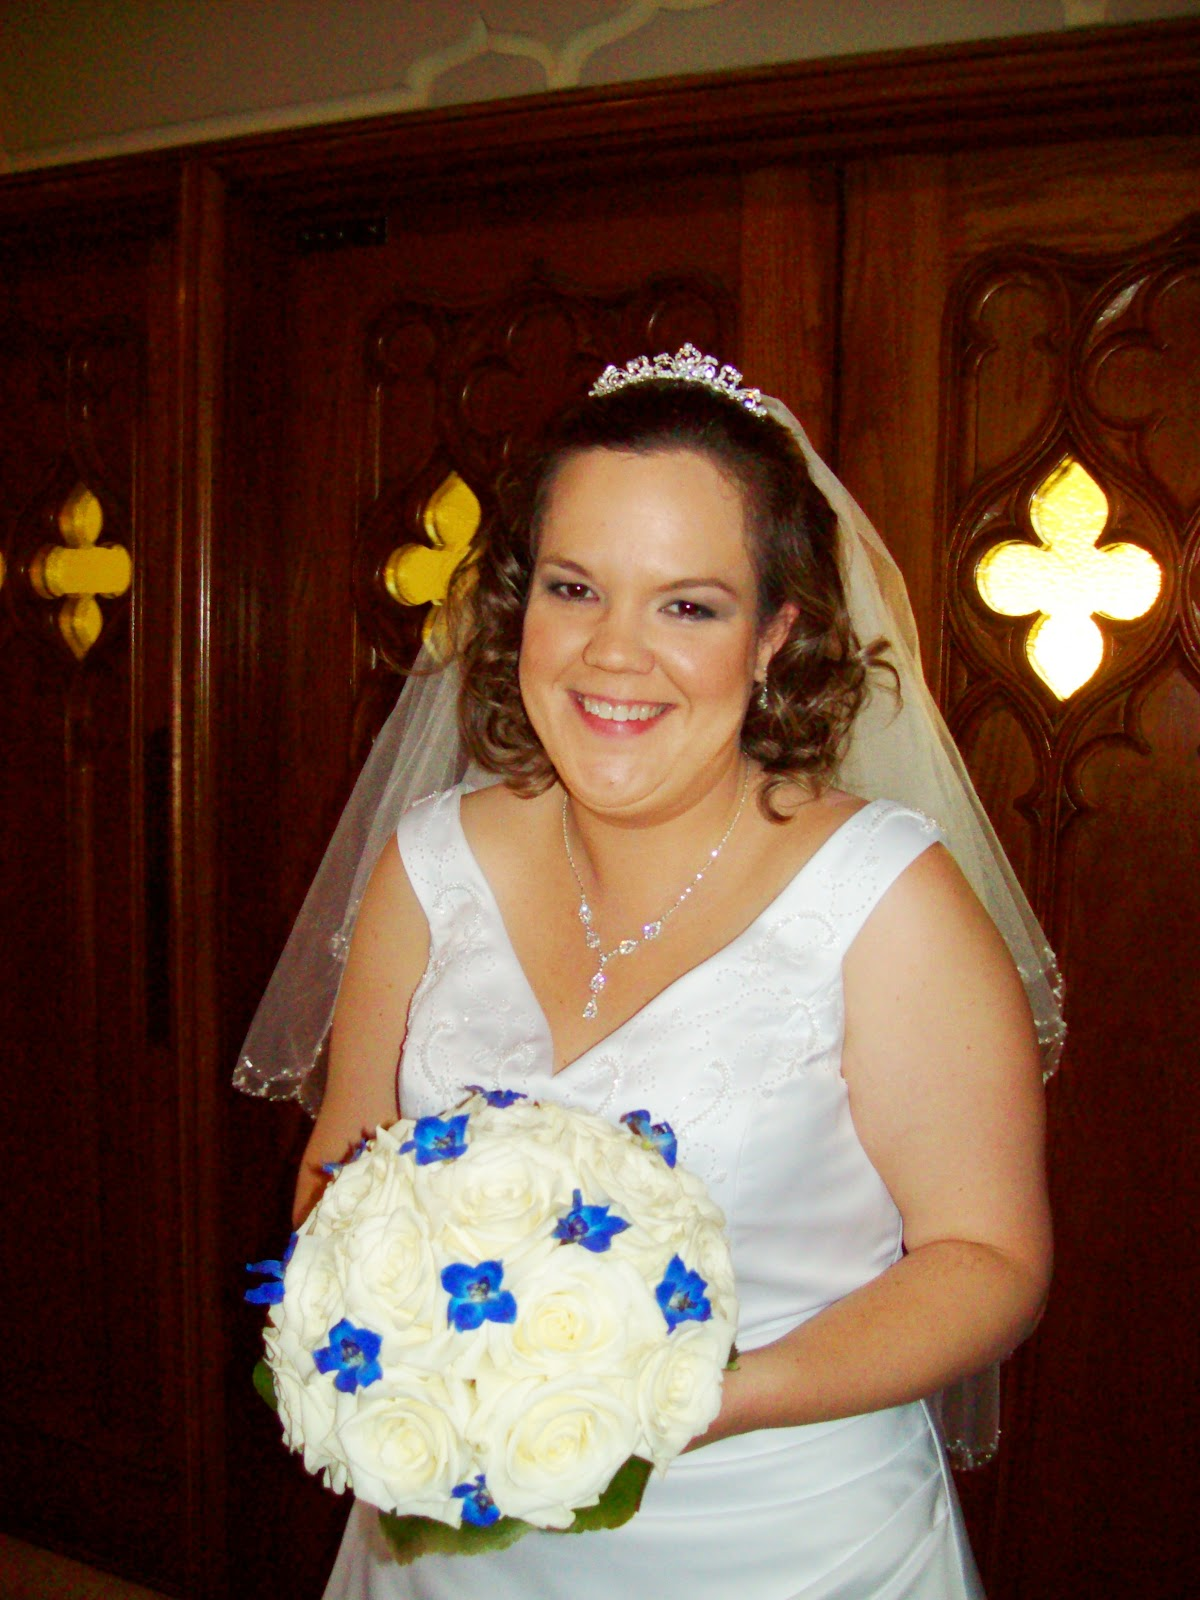 Our Wedding, photos by Brandon Moeller - 100_6367adjust_web.jpg